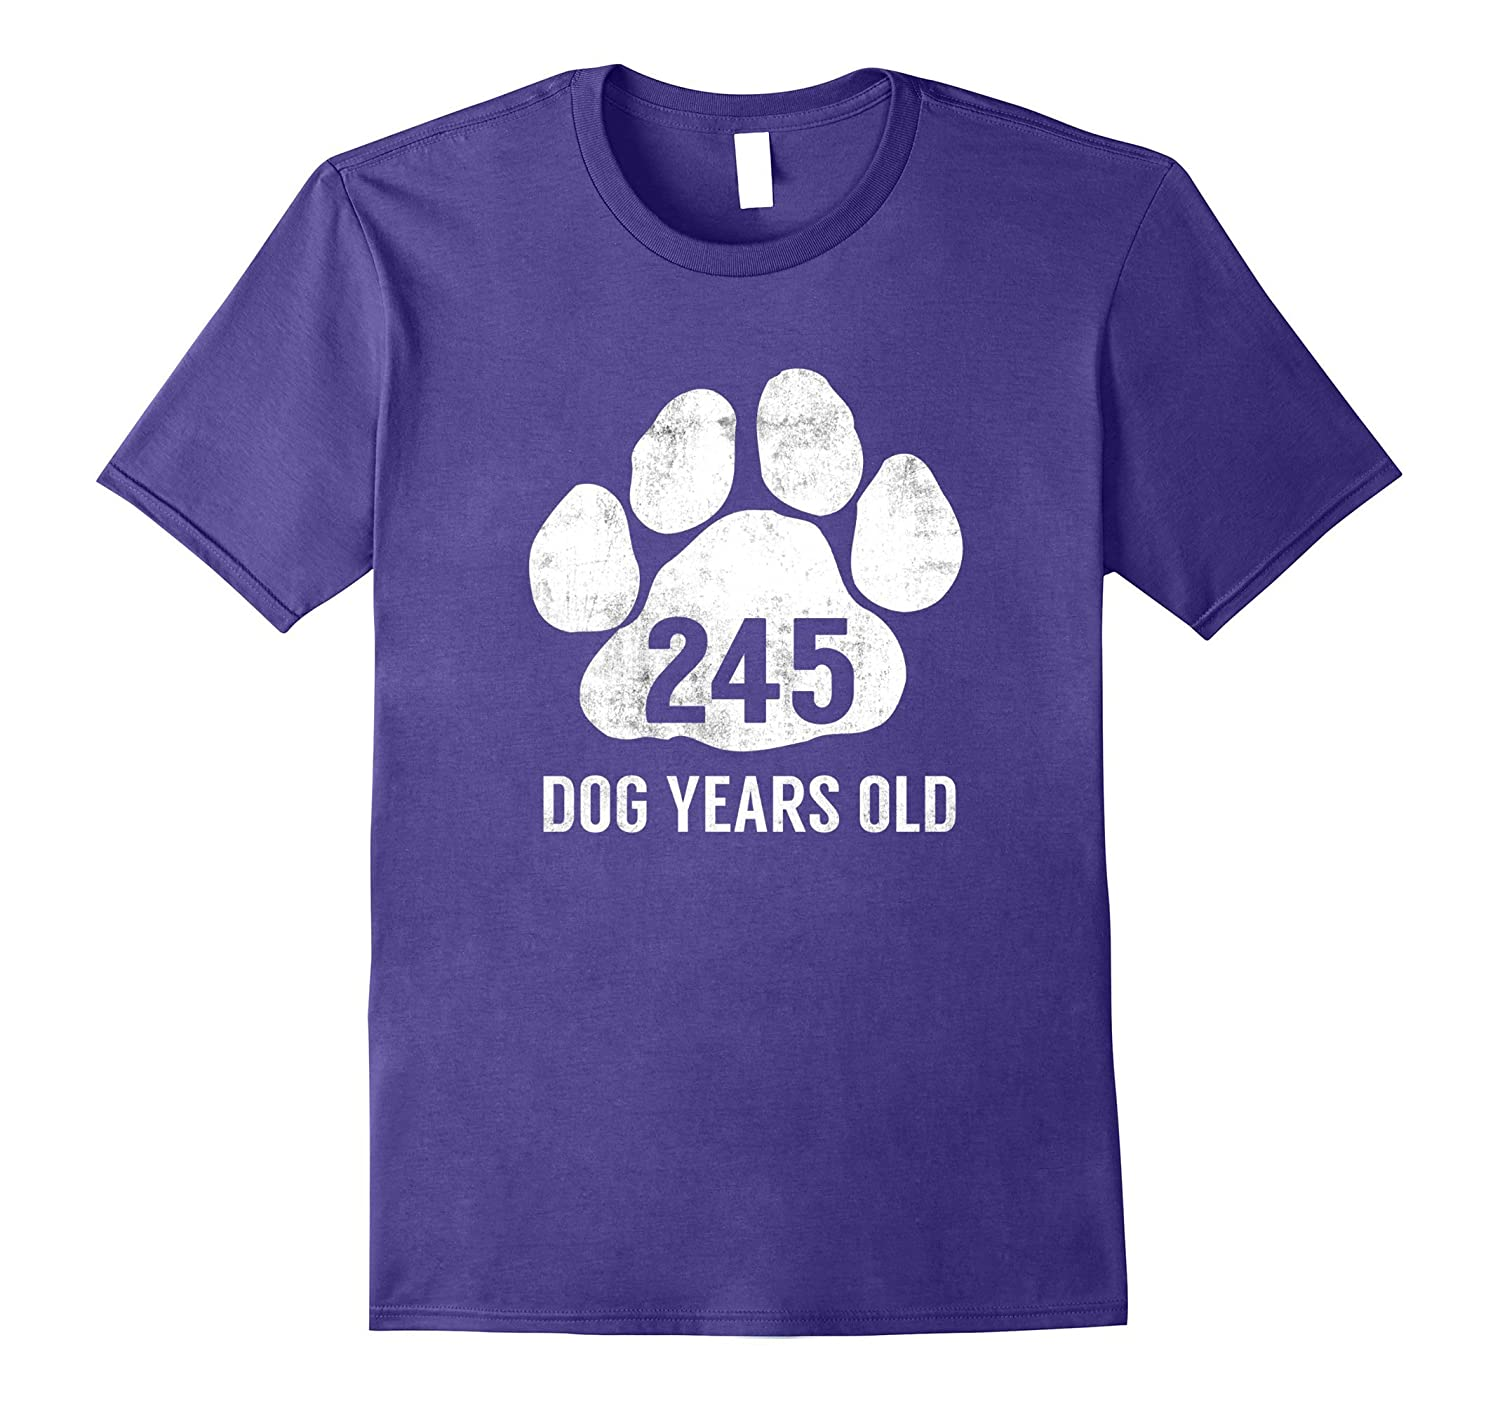 240 Dog Years Old T-Shirt Funny 35th Birthday Gag Gift-Vaci